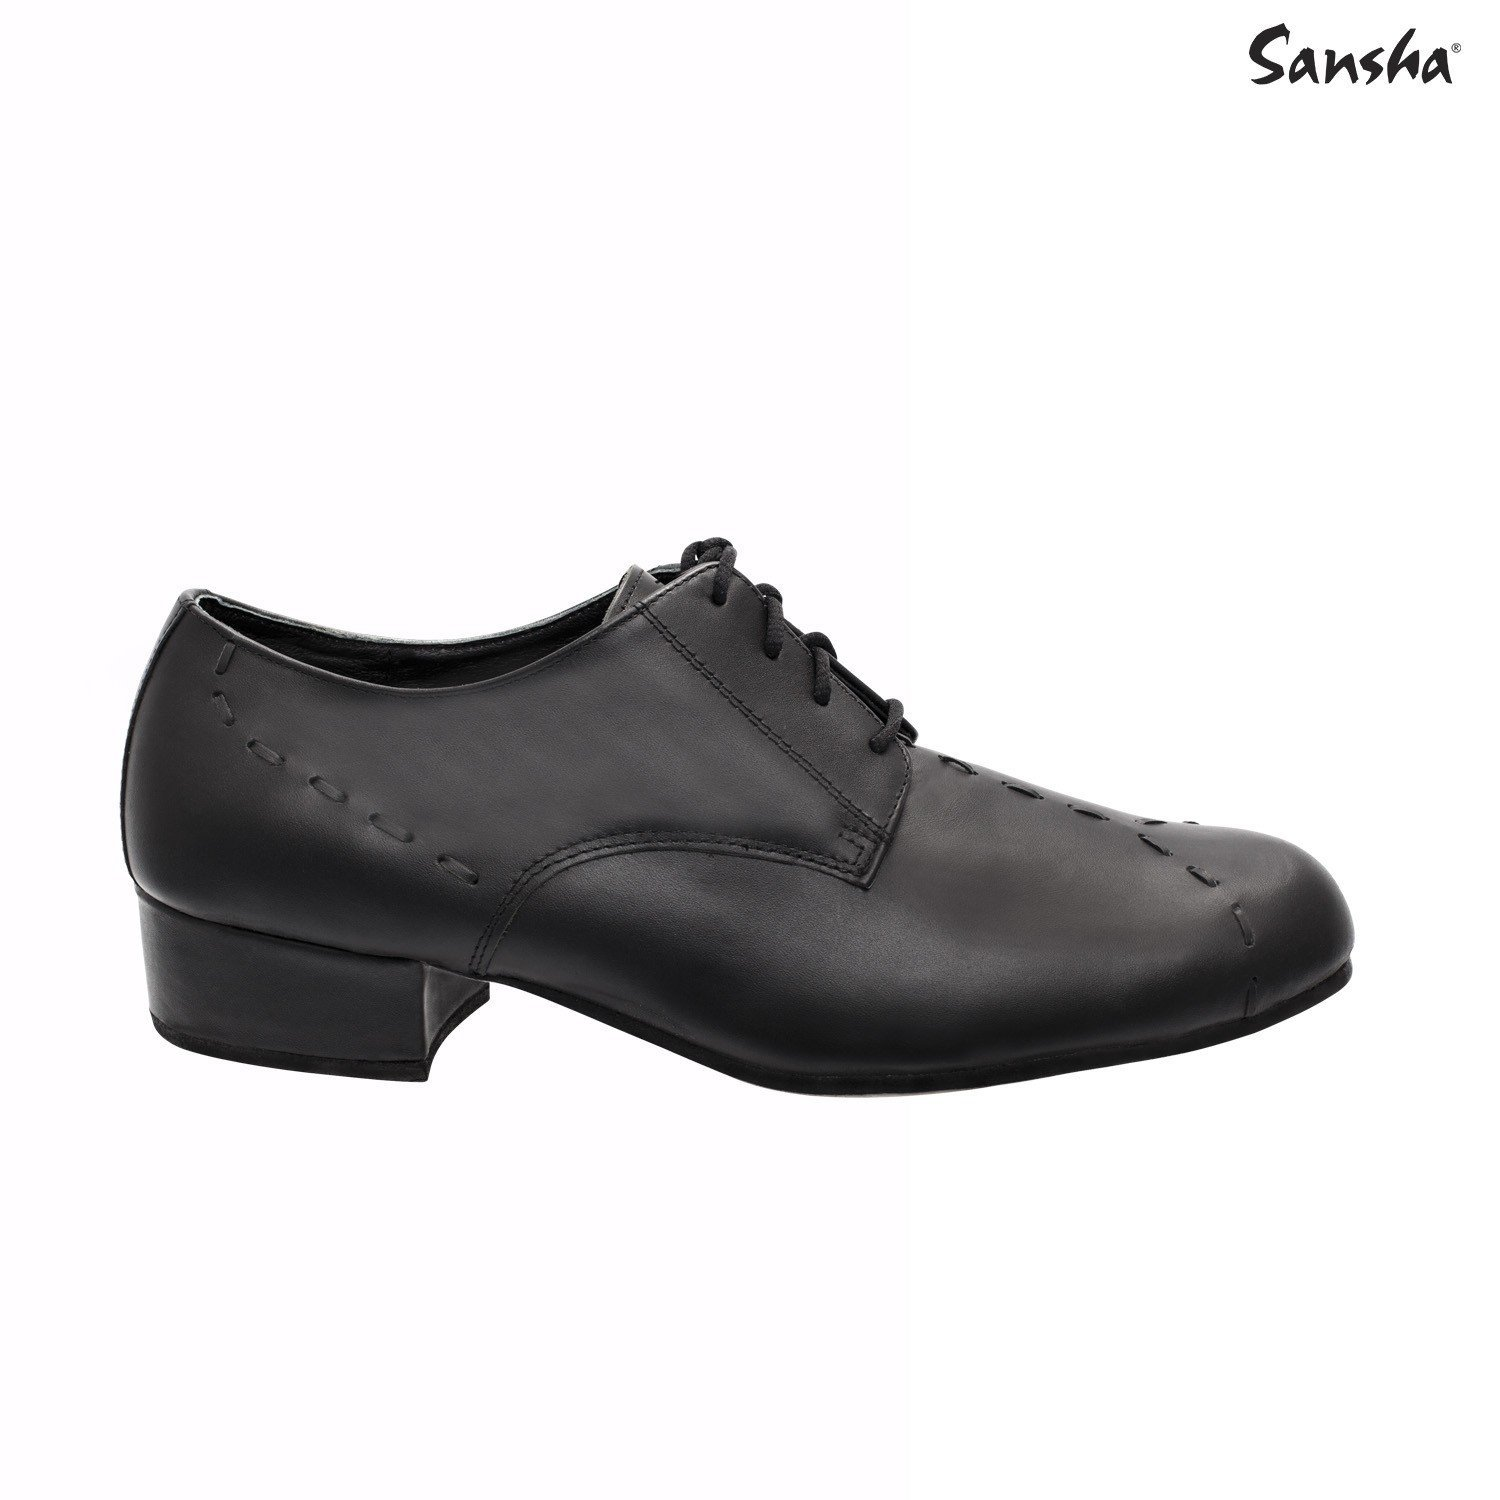 Sansha Cm81l Mens Tarditional Character Shoes